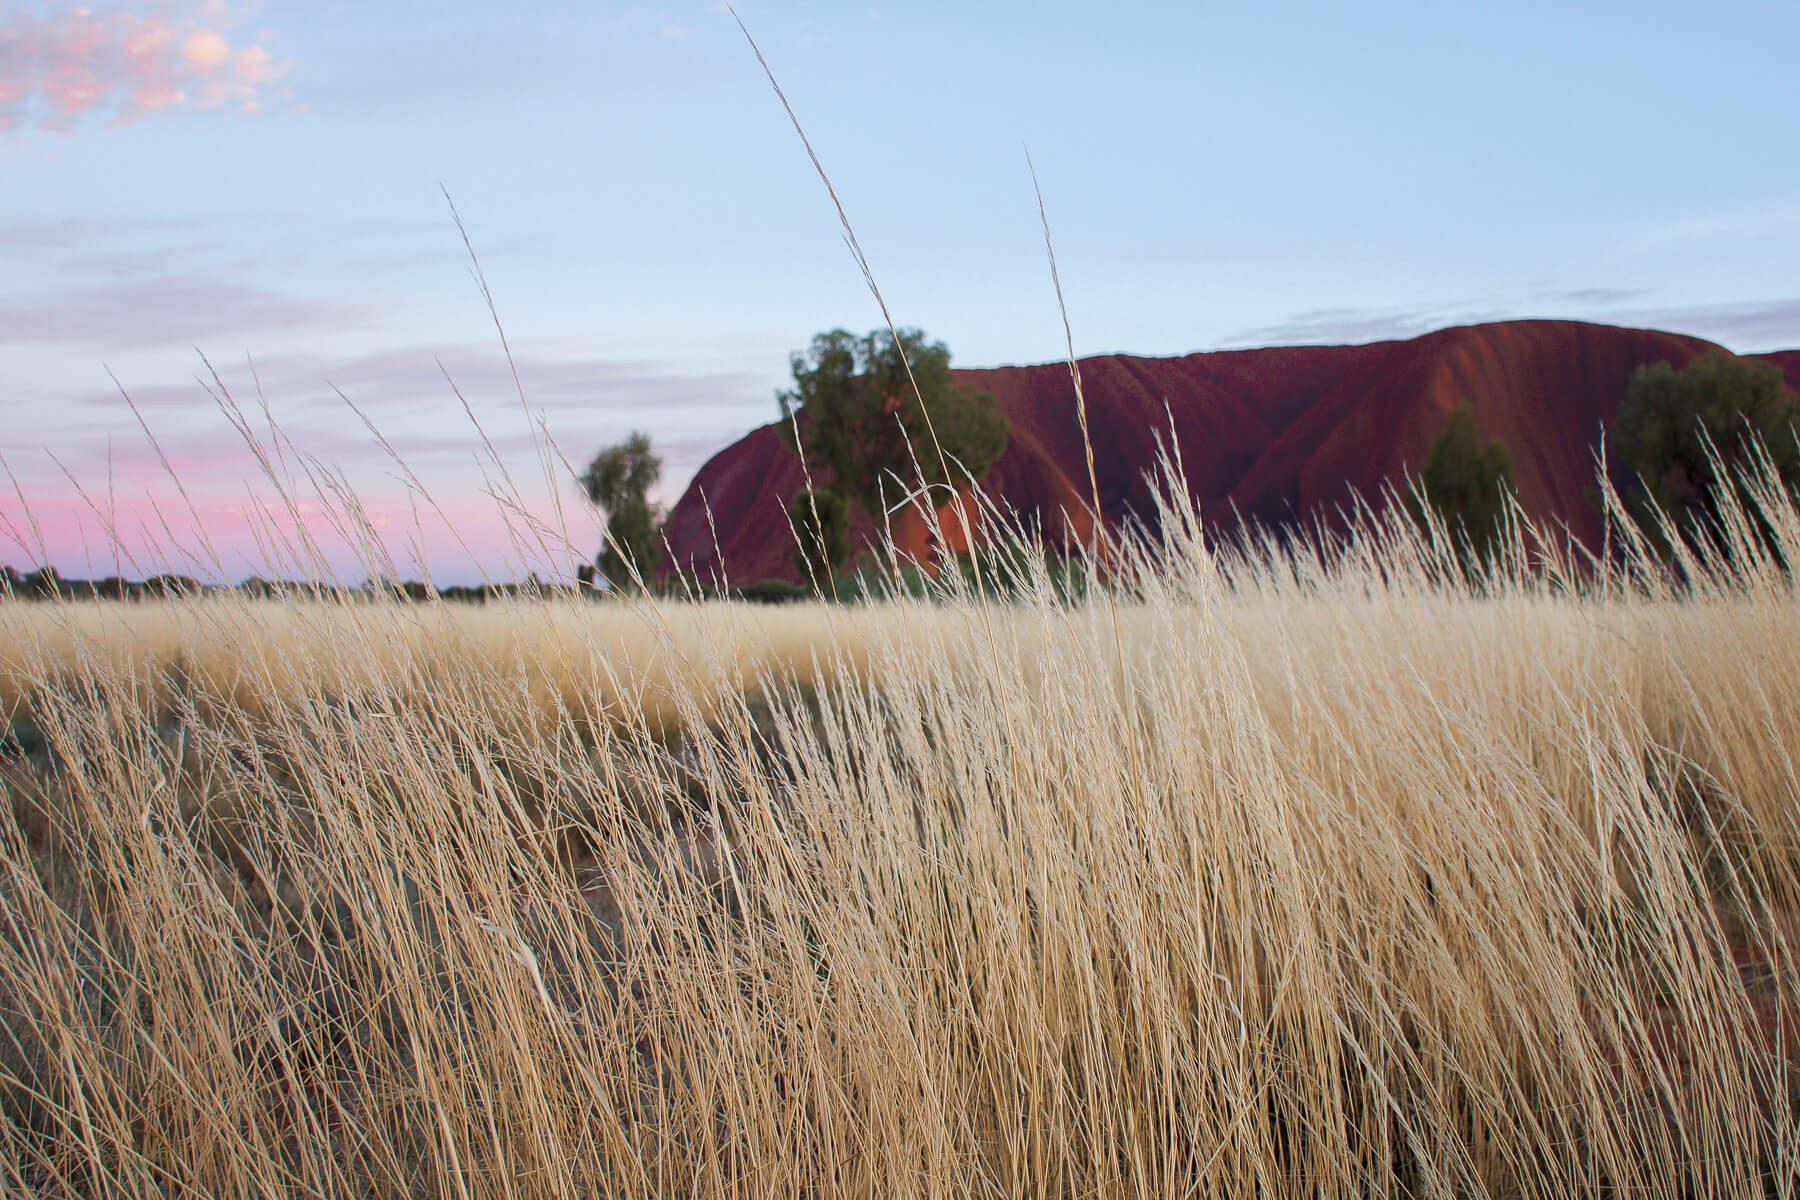 Focused on the Spinifex grass with Uluru in the background and pink sunrise sky